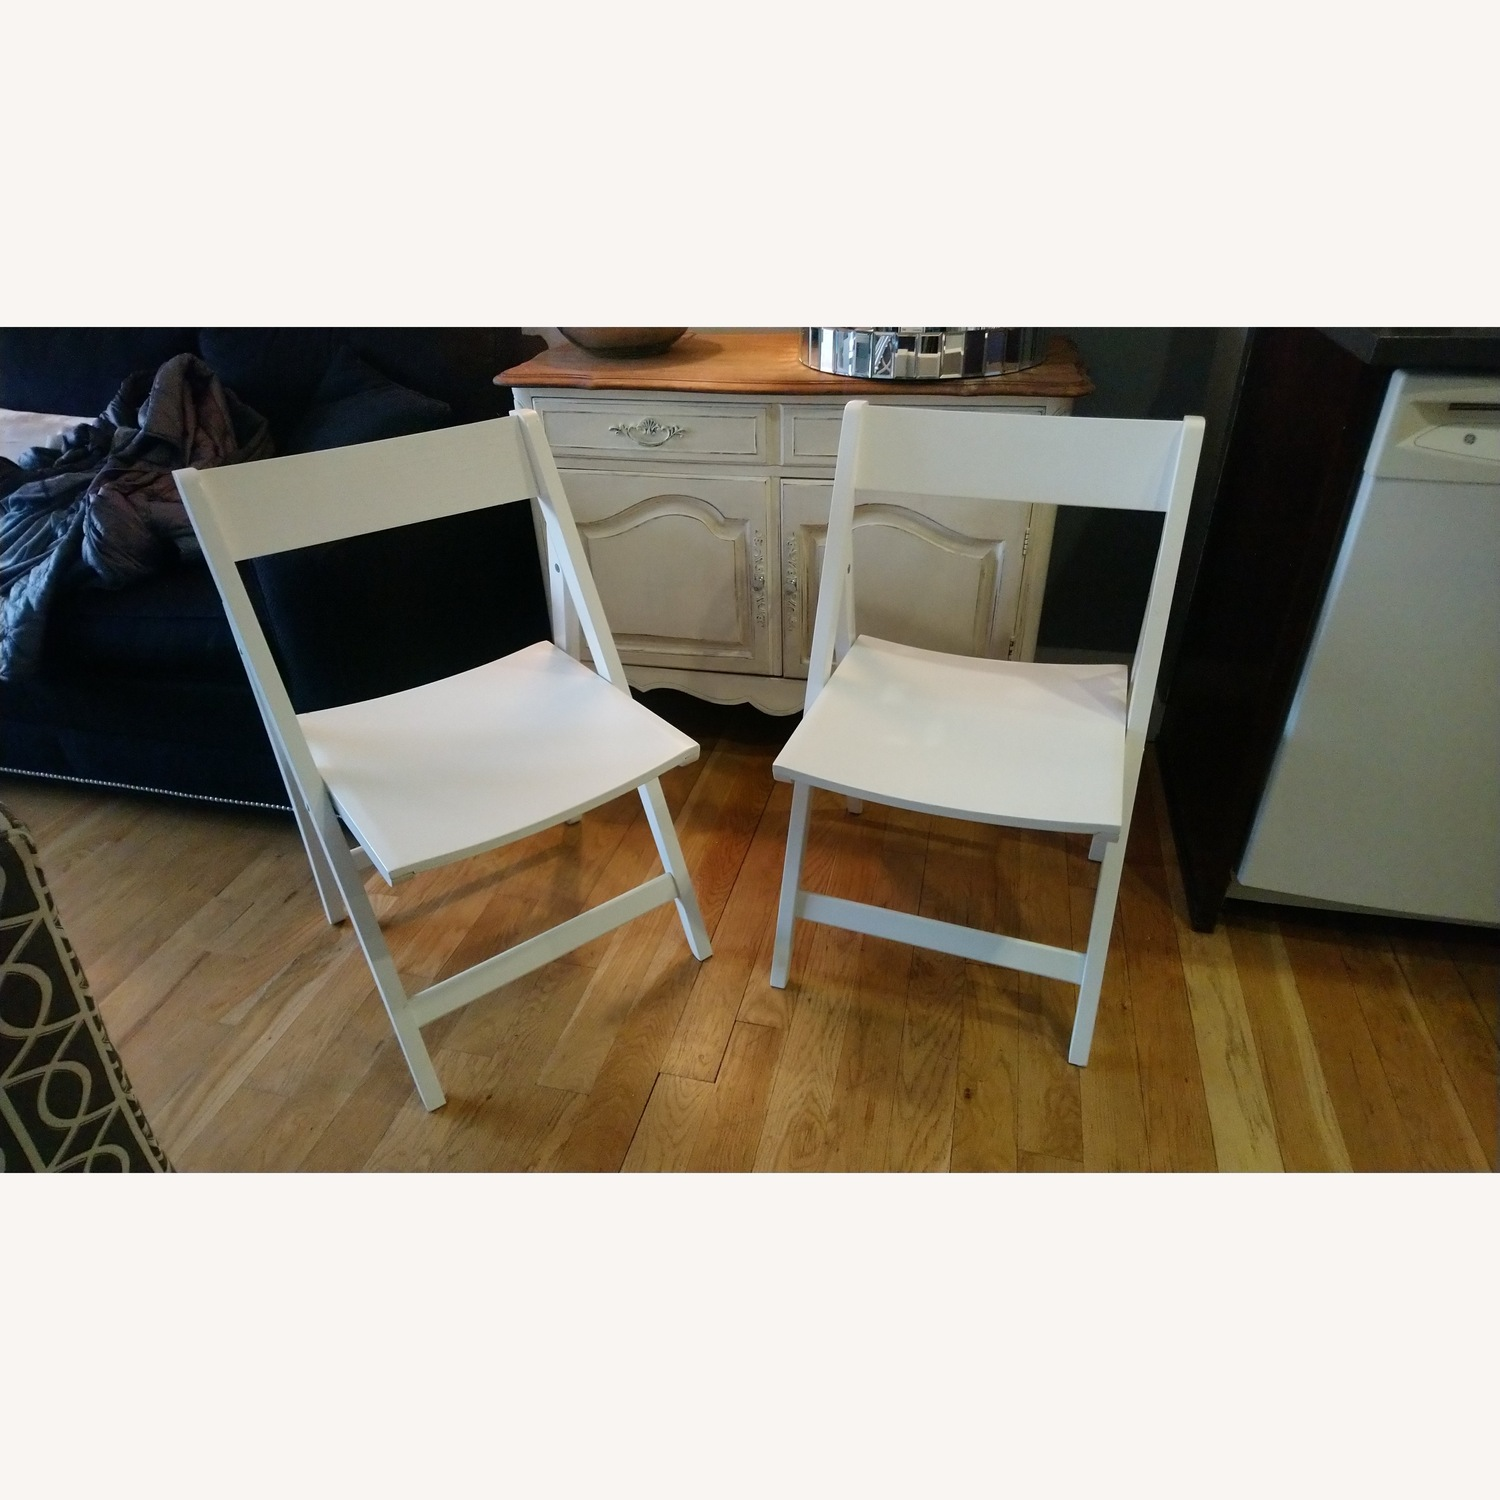 Two Rarely Used Folding Wooden Chairs - image-2